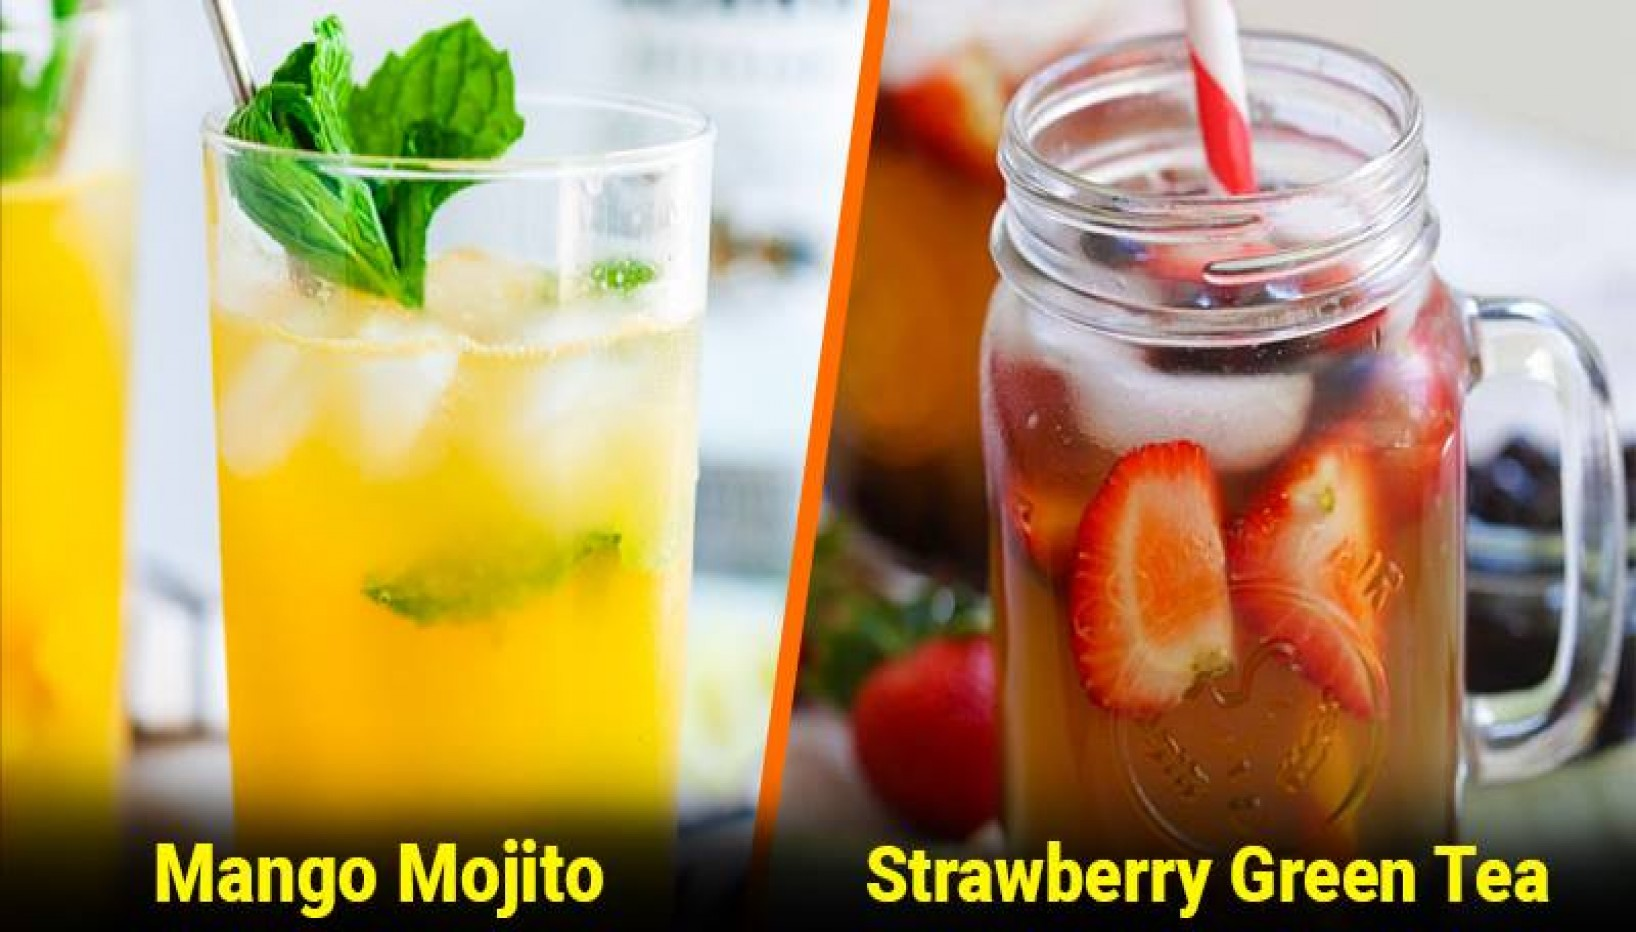 Beat The Heat This Summer With These 9 Refreshing Drinks You Can Make At Home!